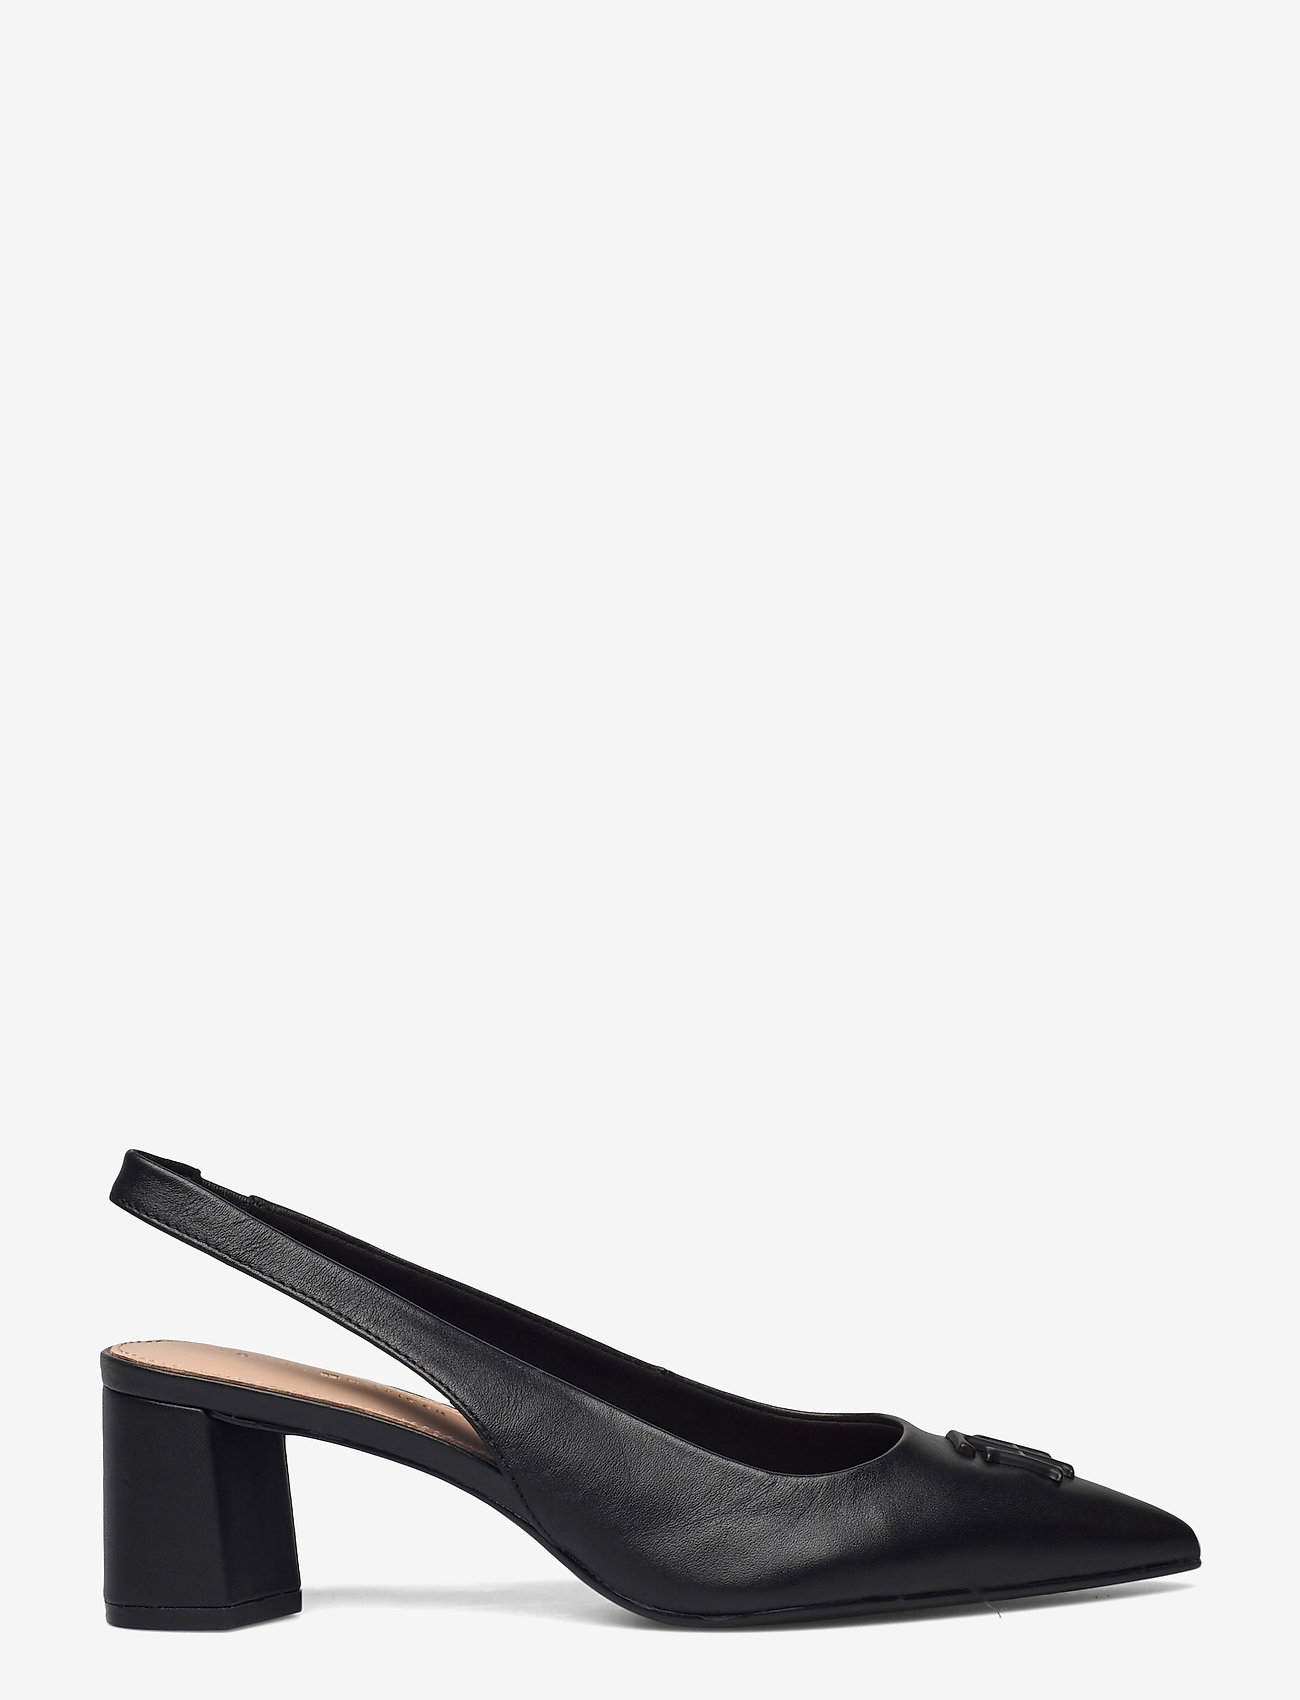 Tommy Hilfiger - FEMININE SLING BACK PUMP - sling backs - black - 1